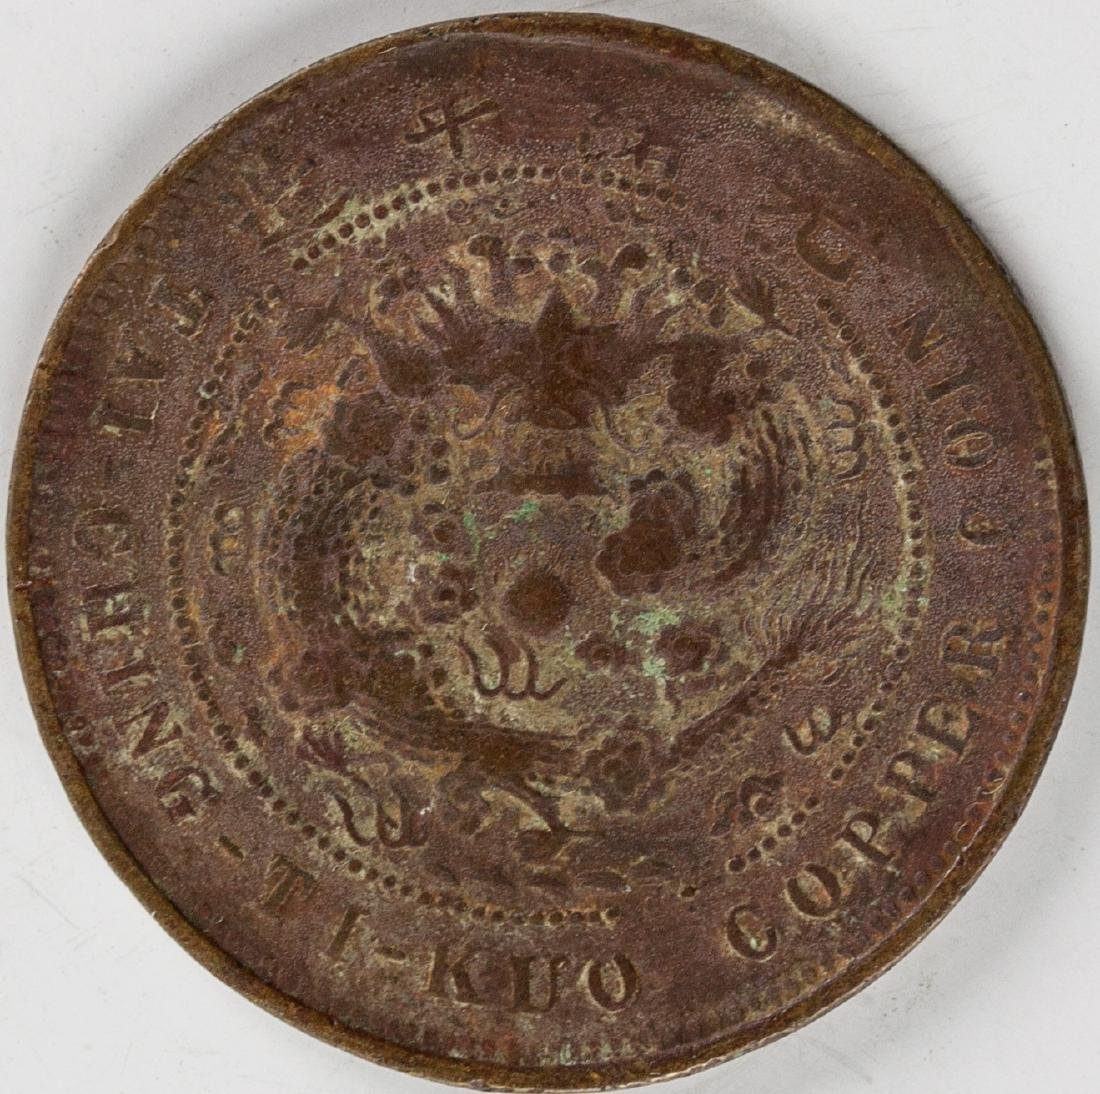 1906 China Copper 10 Cash Coin Hubei Mint Y-10